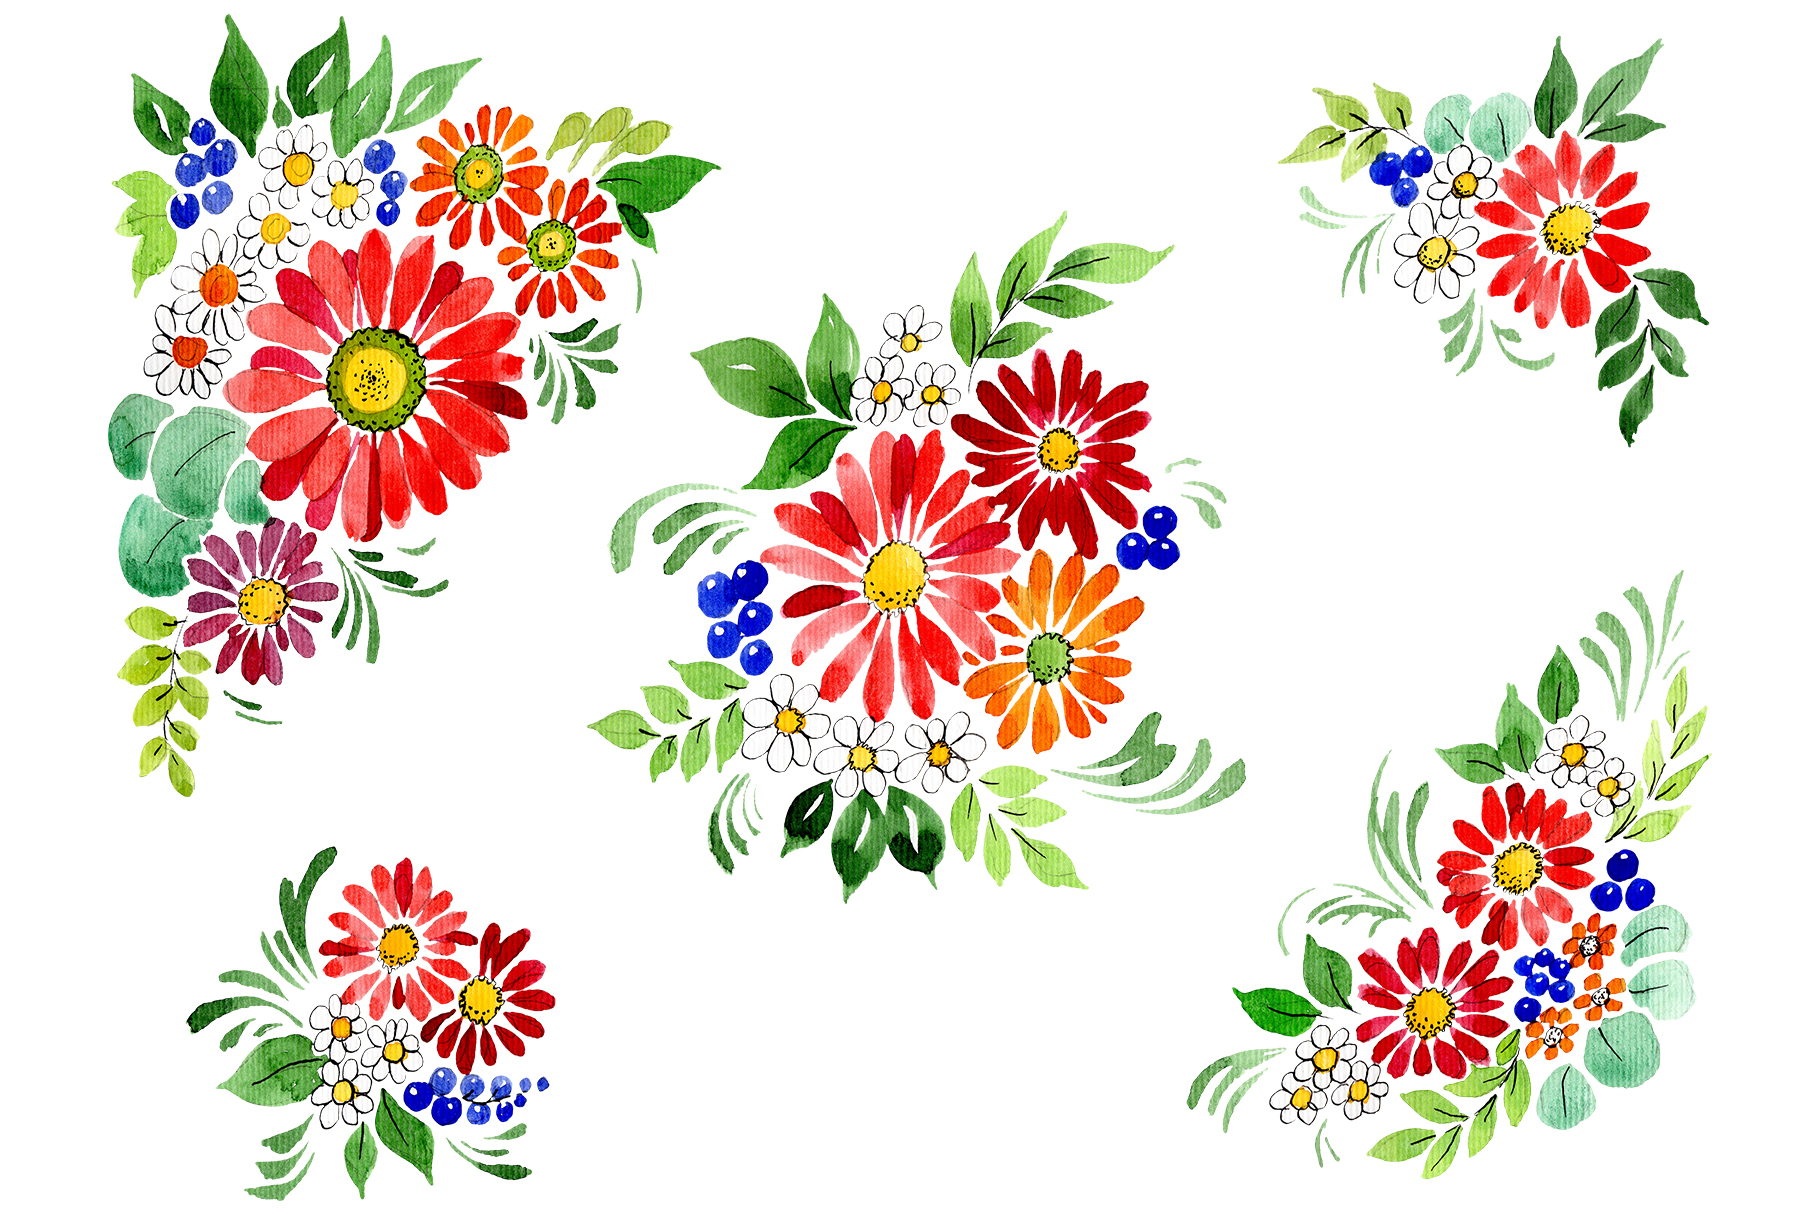 Download Free Bouquet Gifts Of Nature Watercolor Graphic By Mystocks for Cricut Explore, Silhouette and other cutting machines.